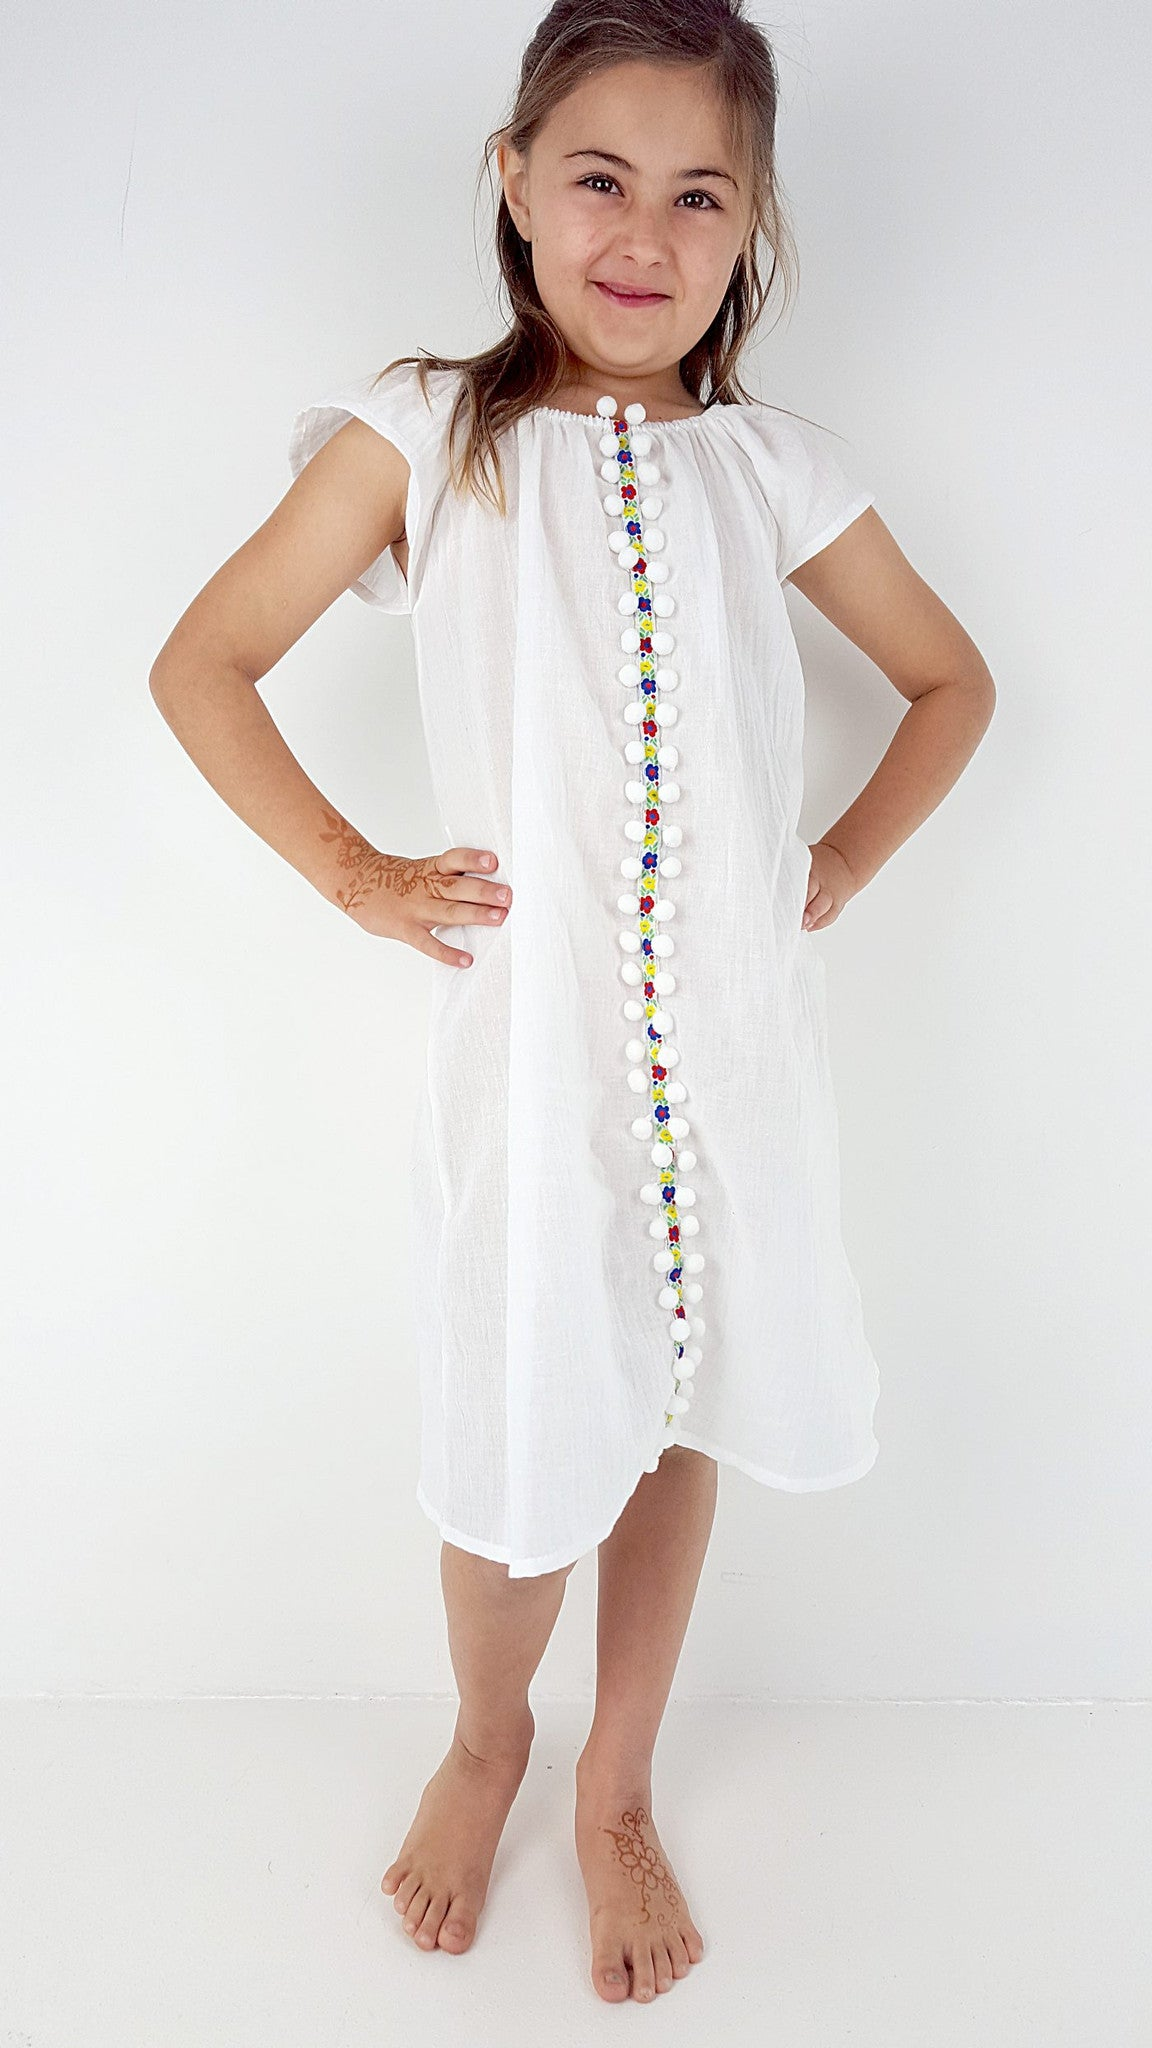 ef20f2a37 Summer Sundays White Cotton Dress – KOBOMO